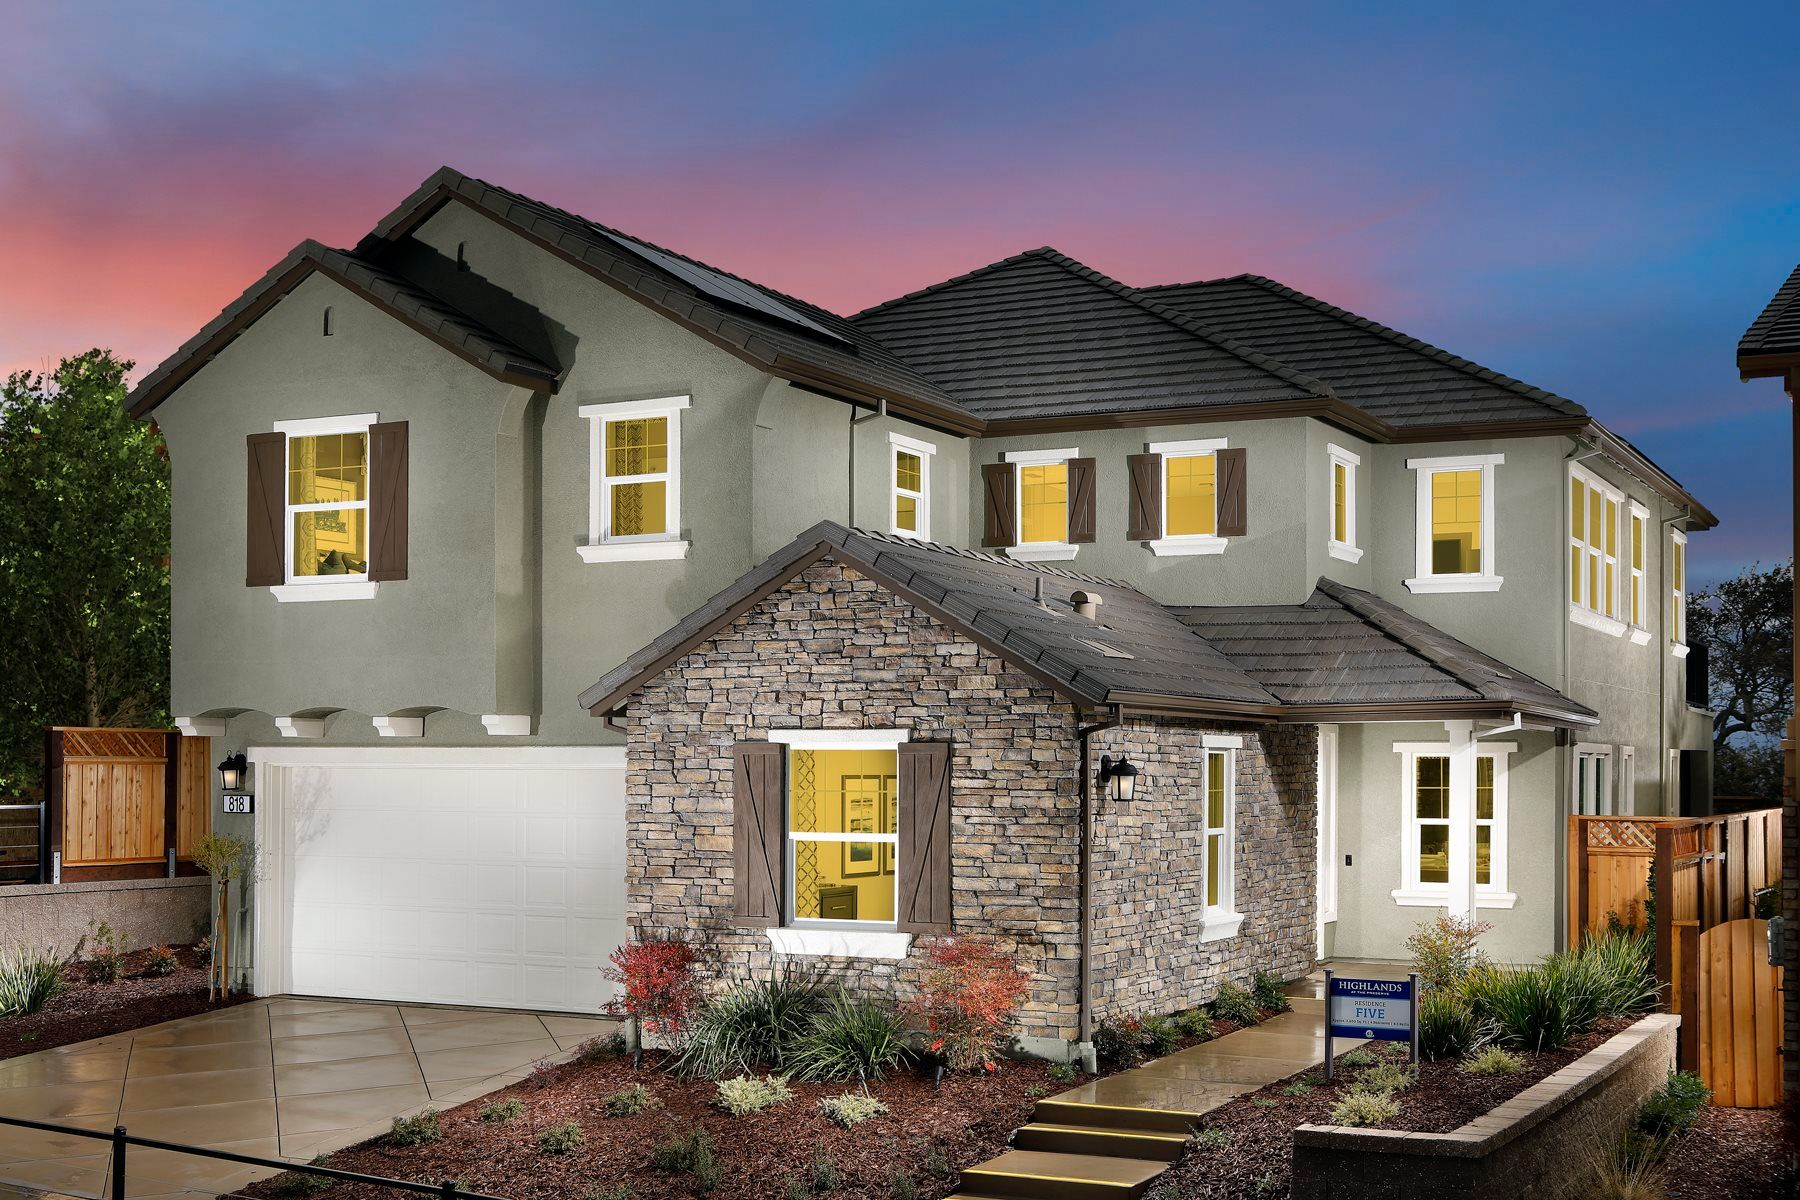 Single Family for Active at The Preserve - Highlands - Residence Five 5010 Faria Preserve Parkway San Ramon, California 94583 United States